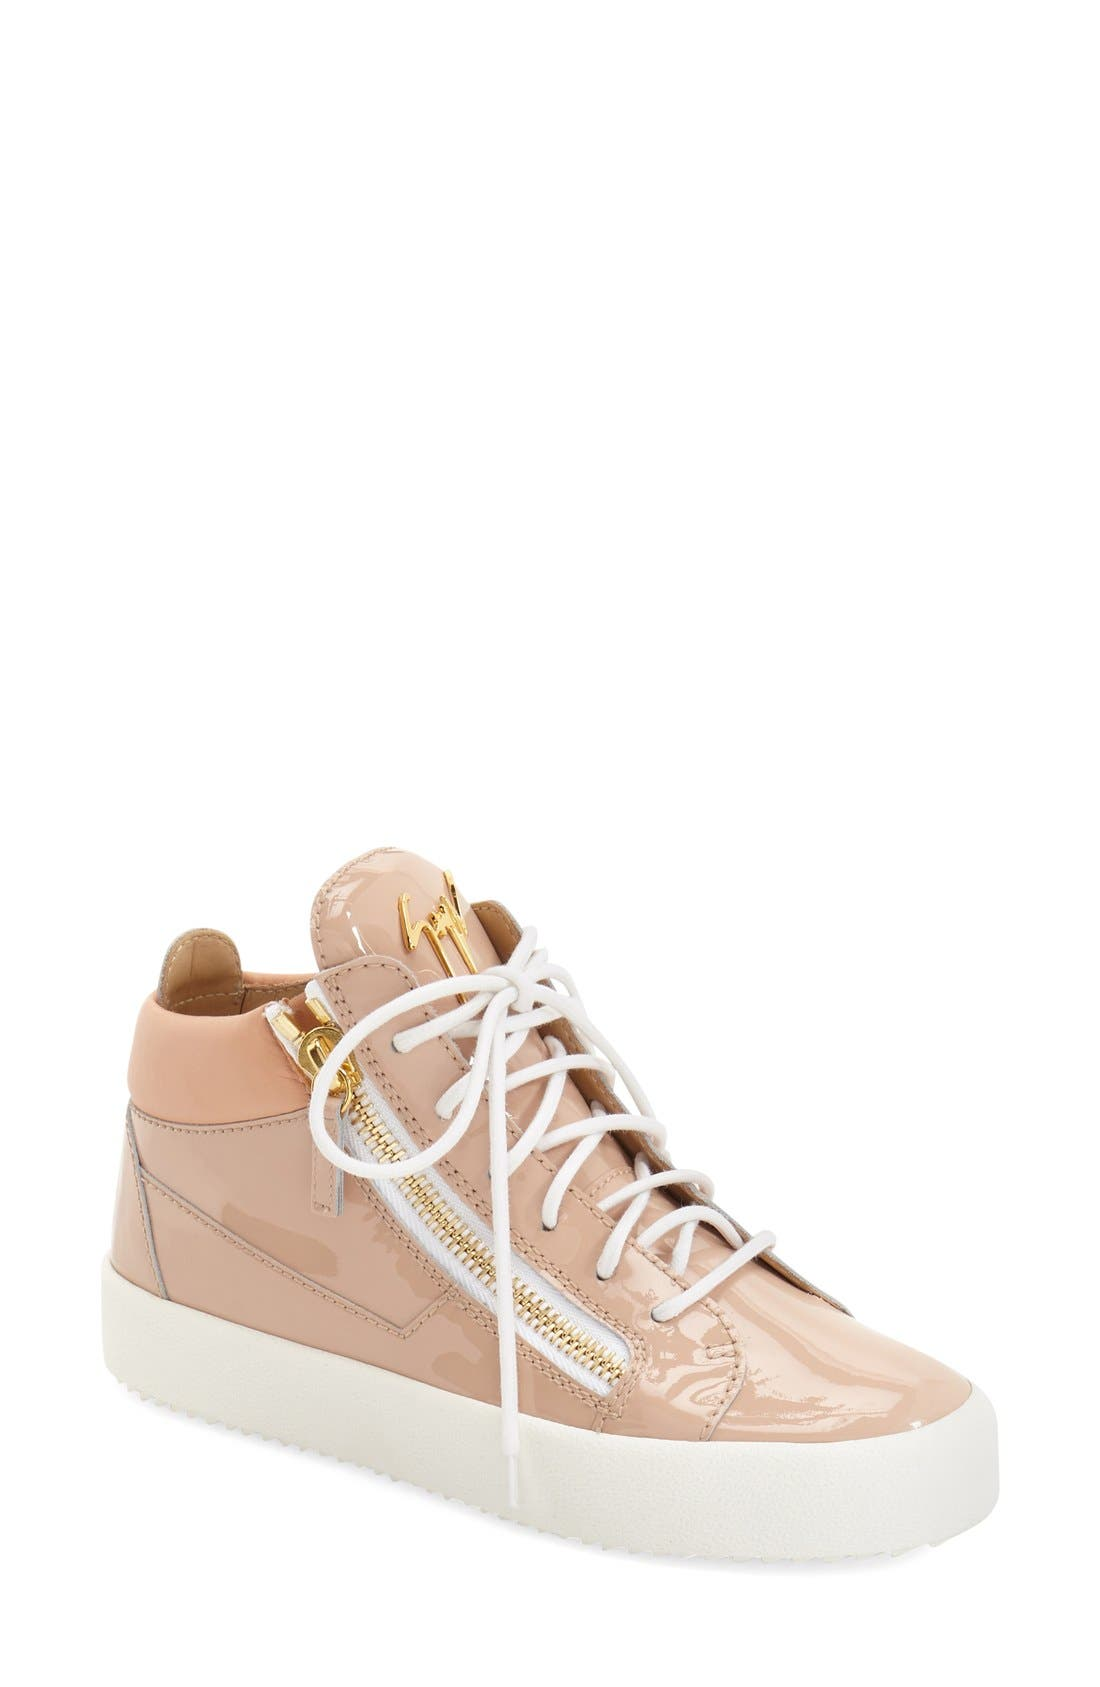 Giuseppe Zanotti May London High Top Sneaker (Women) (Nordstrom Exclusive Color)